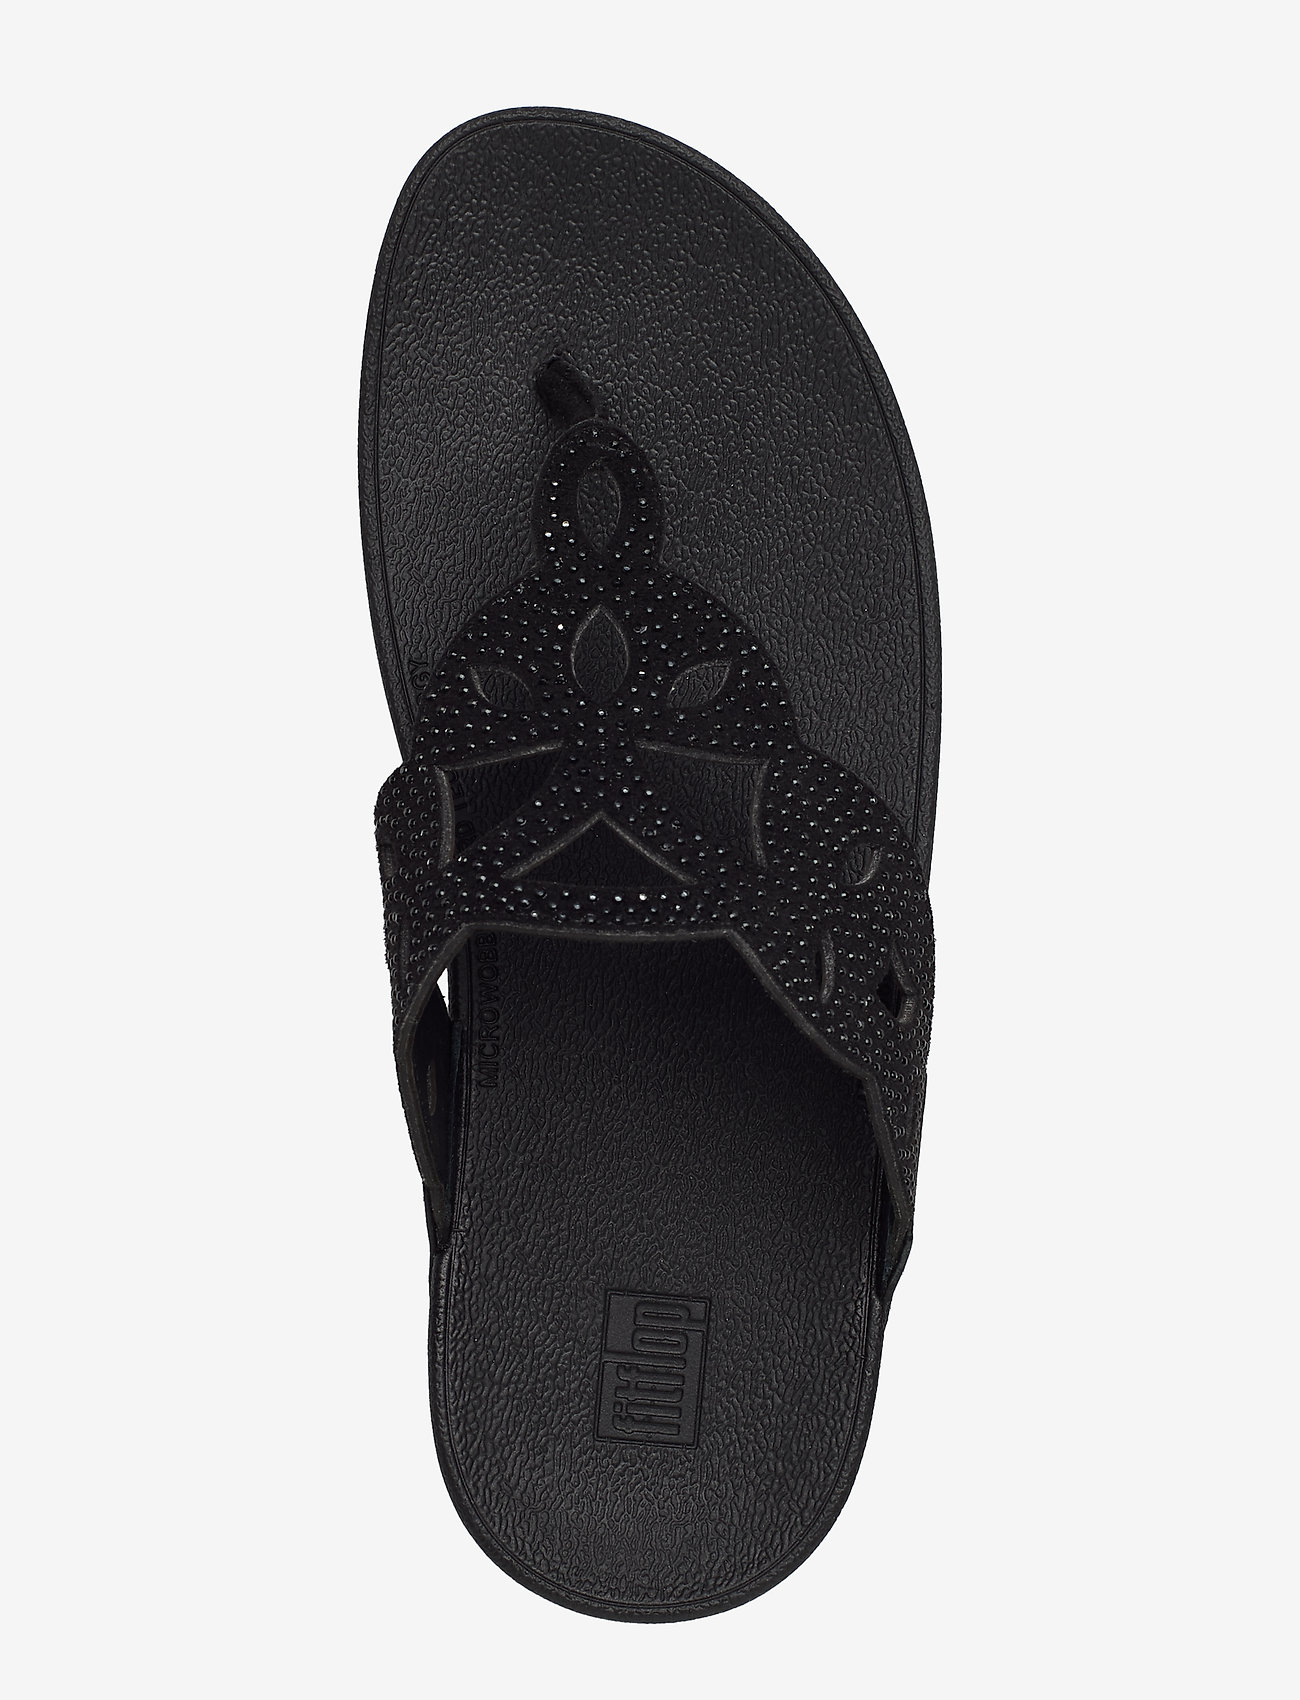 Elora Crystal Toe-thongs (All Black) - FitFlop